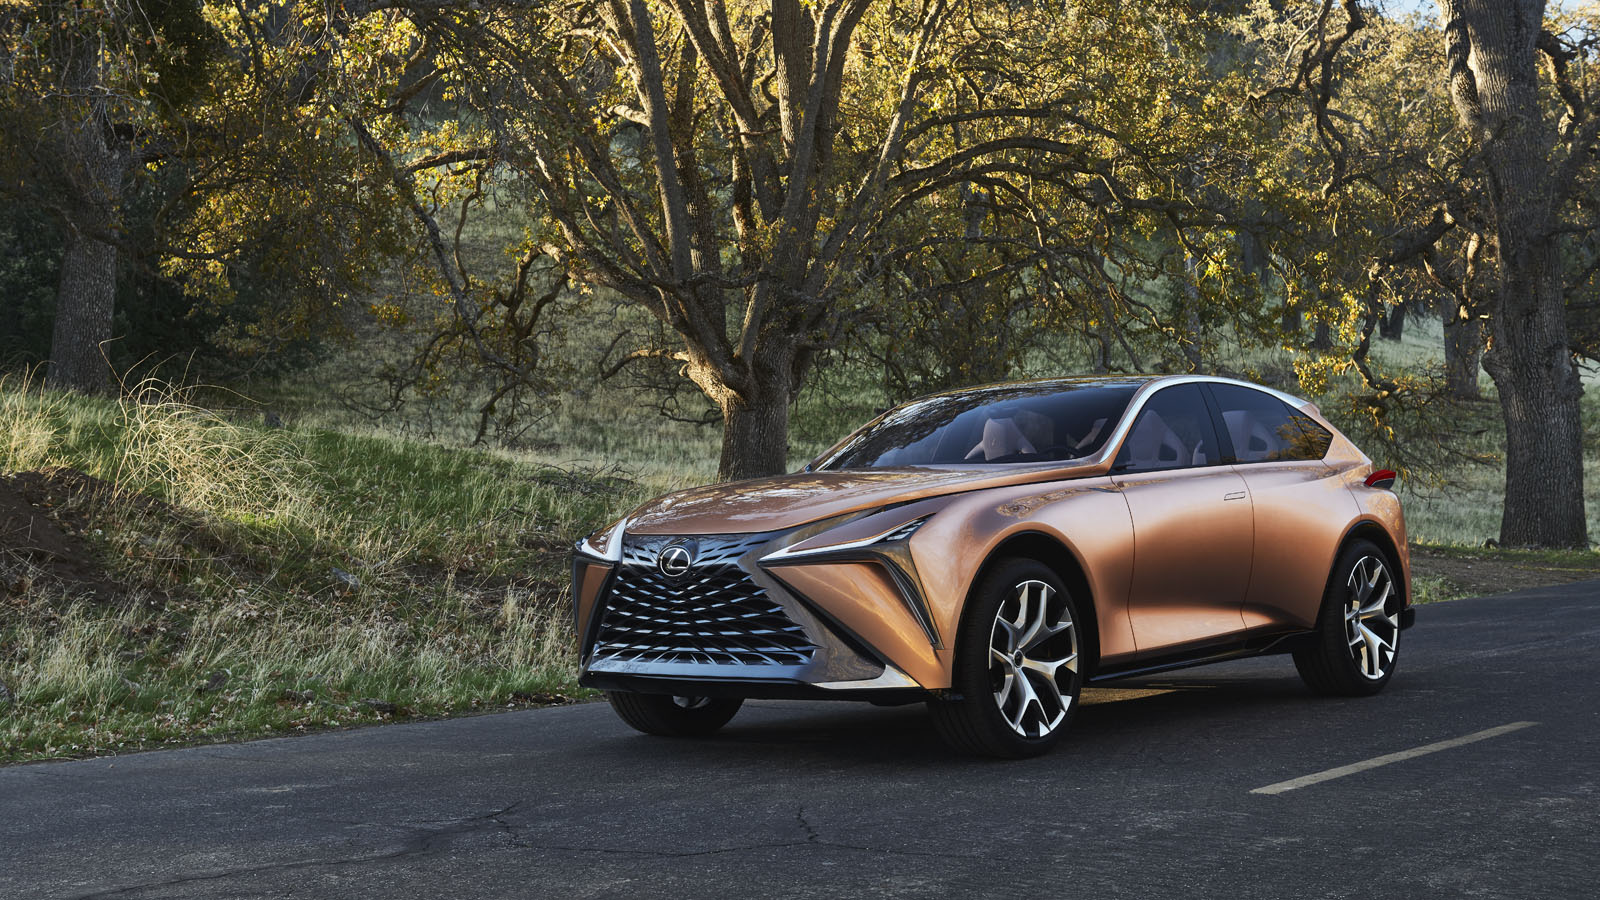 lexus lf 1 concept previews new luxury crossover 5 things you need to know news. Black Bedroom Furniture Sets. Home Design Ideas